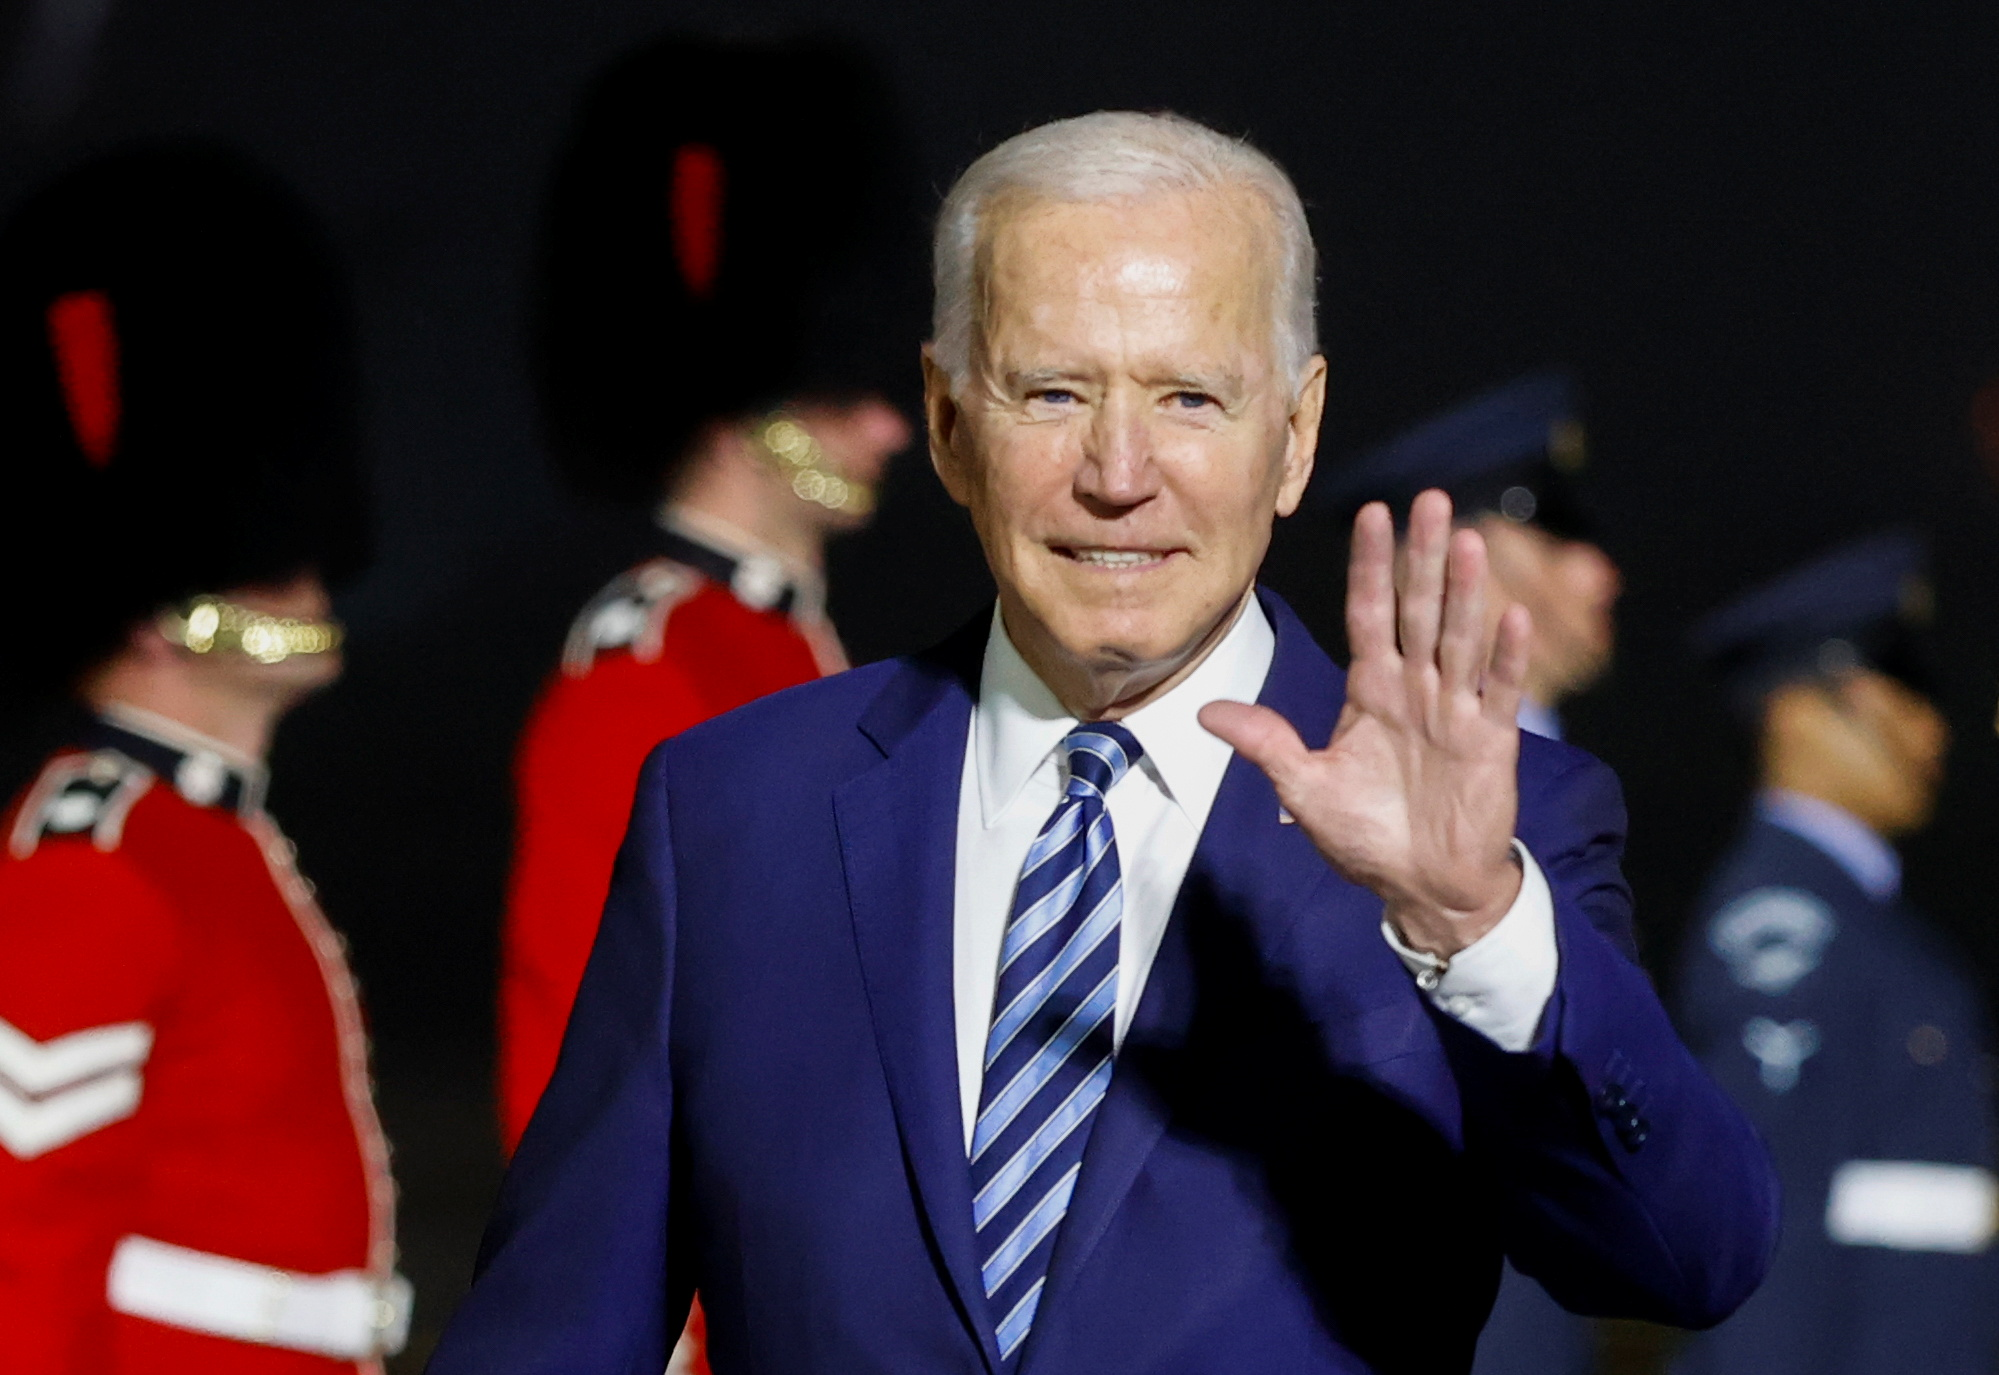 Biden to donate 500 million Pfizer doses, urge others to join in